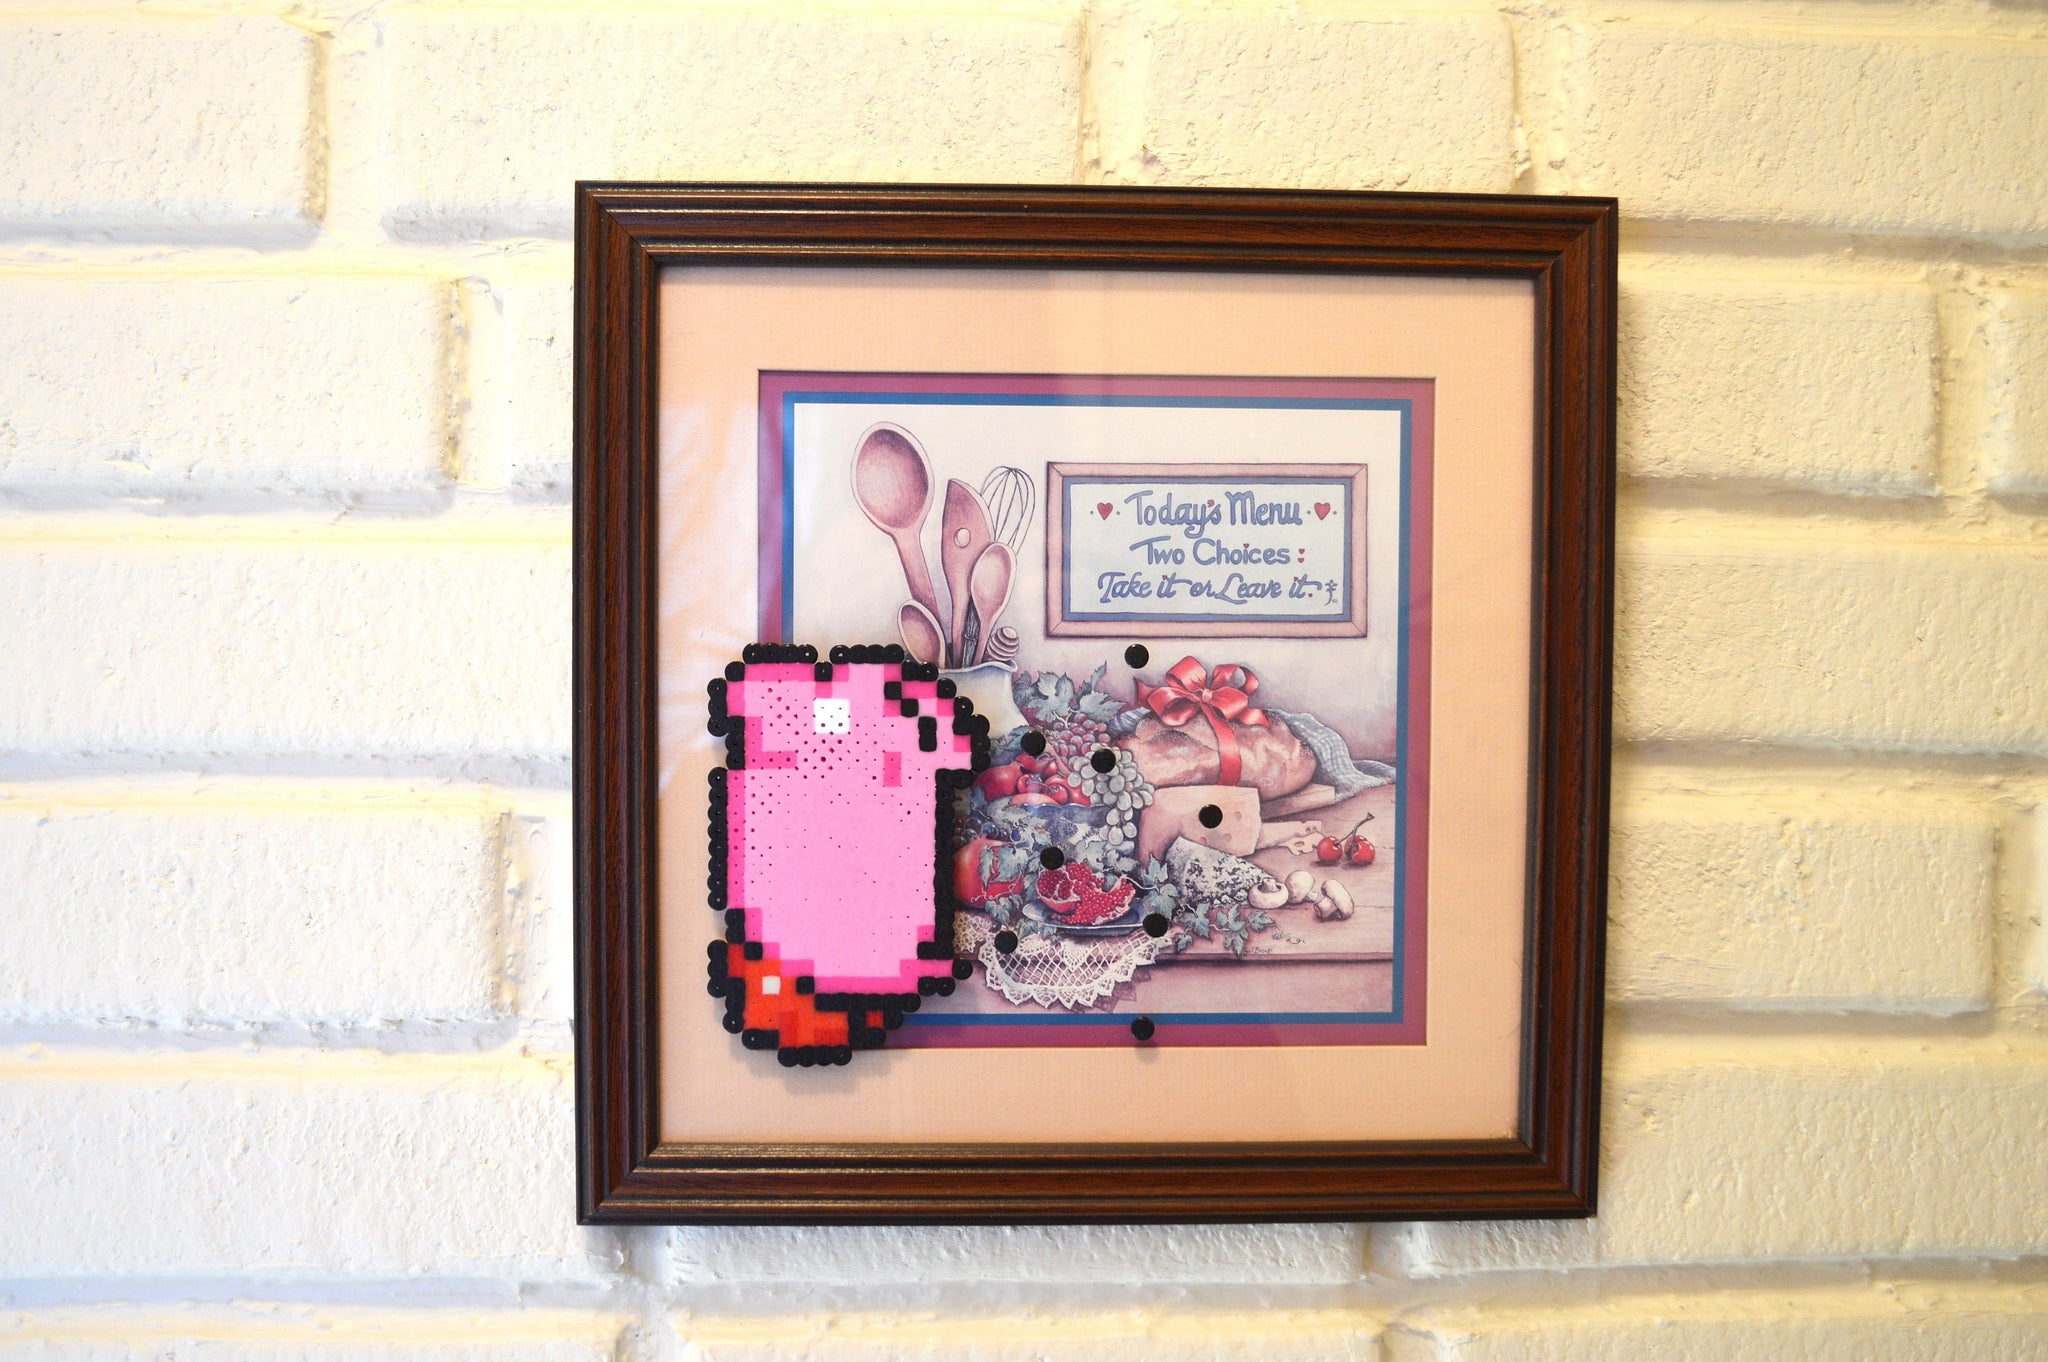 Kirby Pixel art - Perler bead reclaimed painting alteration original artwork